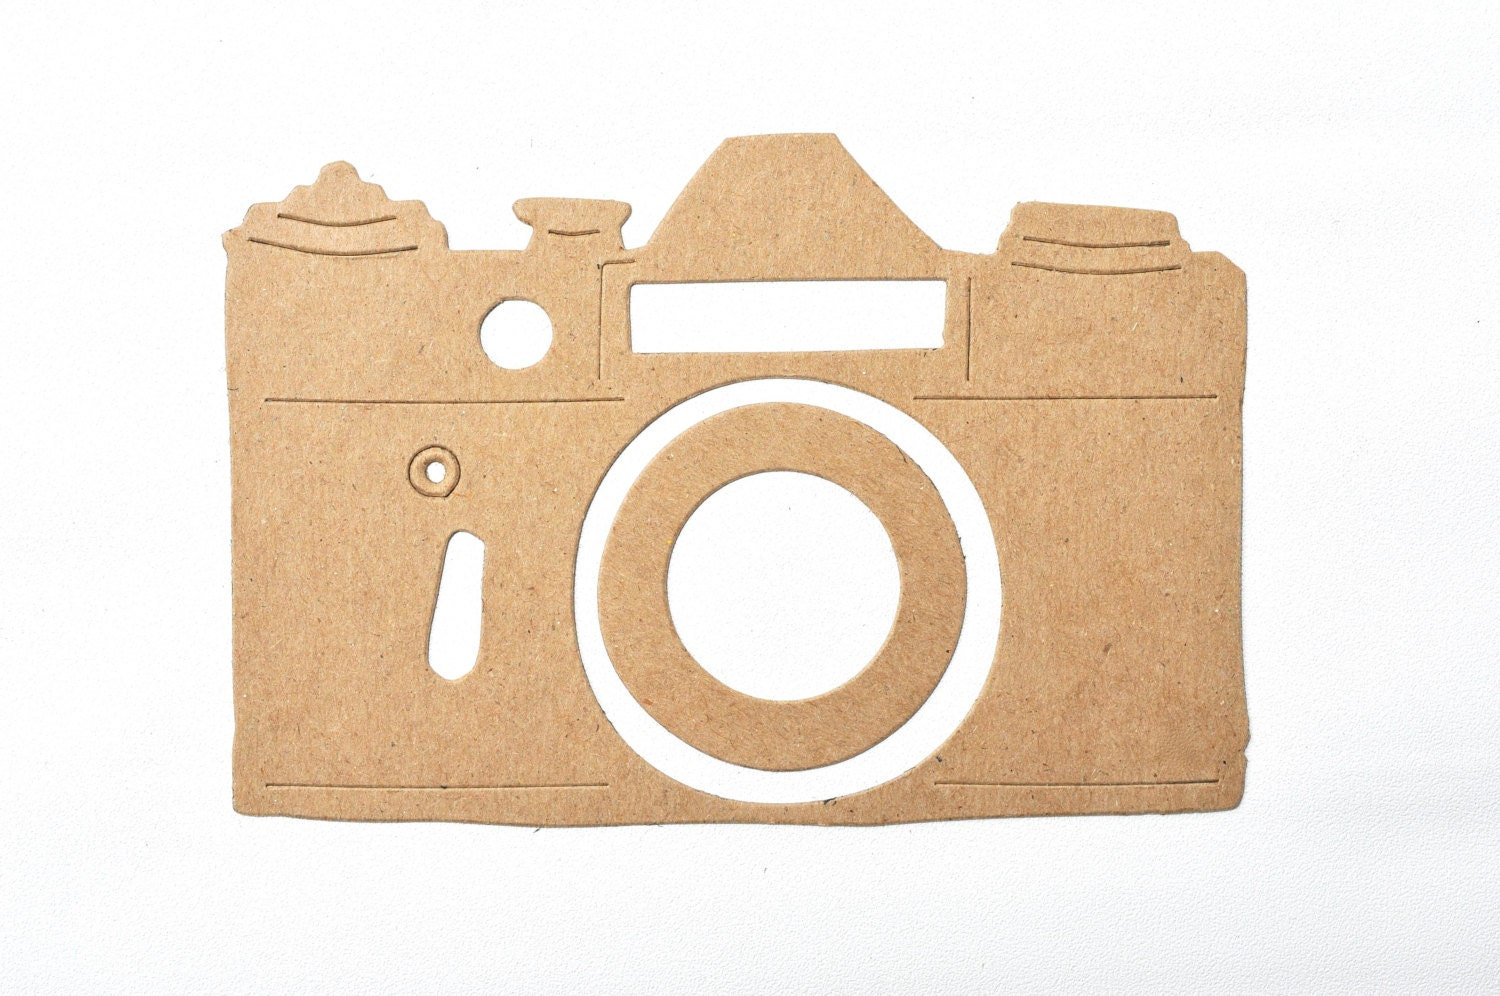 Chipboard Shapes Ideas ~ Camera chipboard die cut shapes click bare thick board